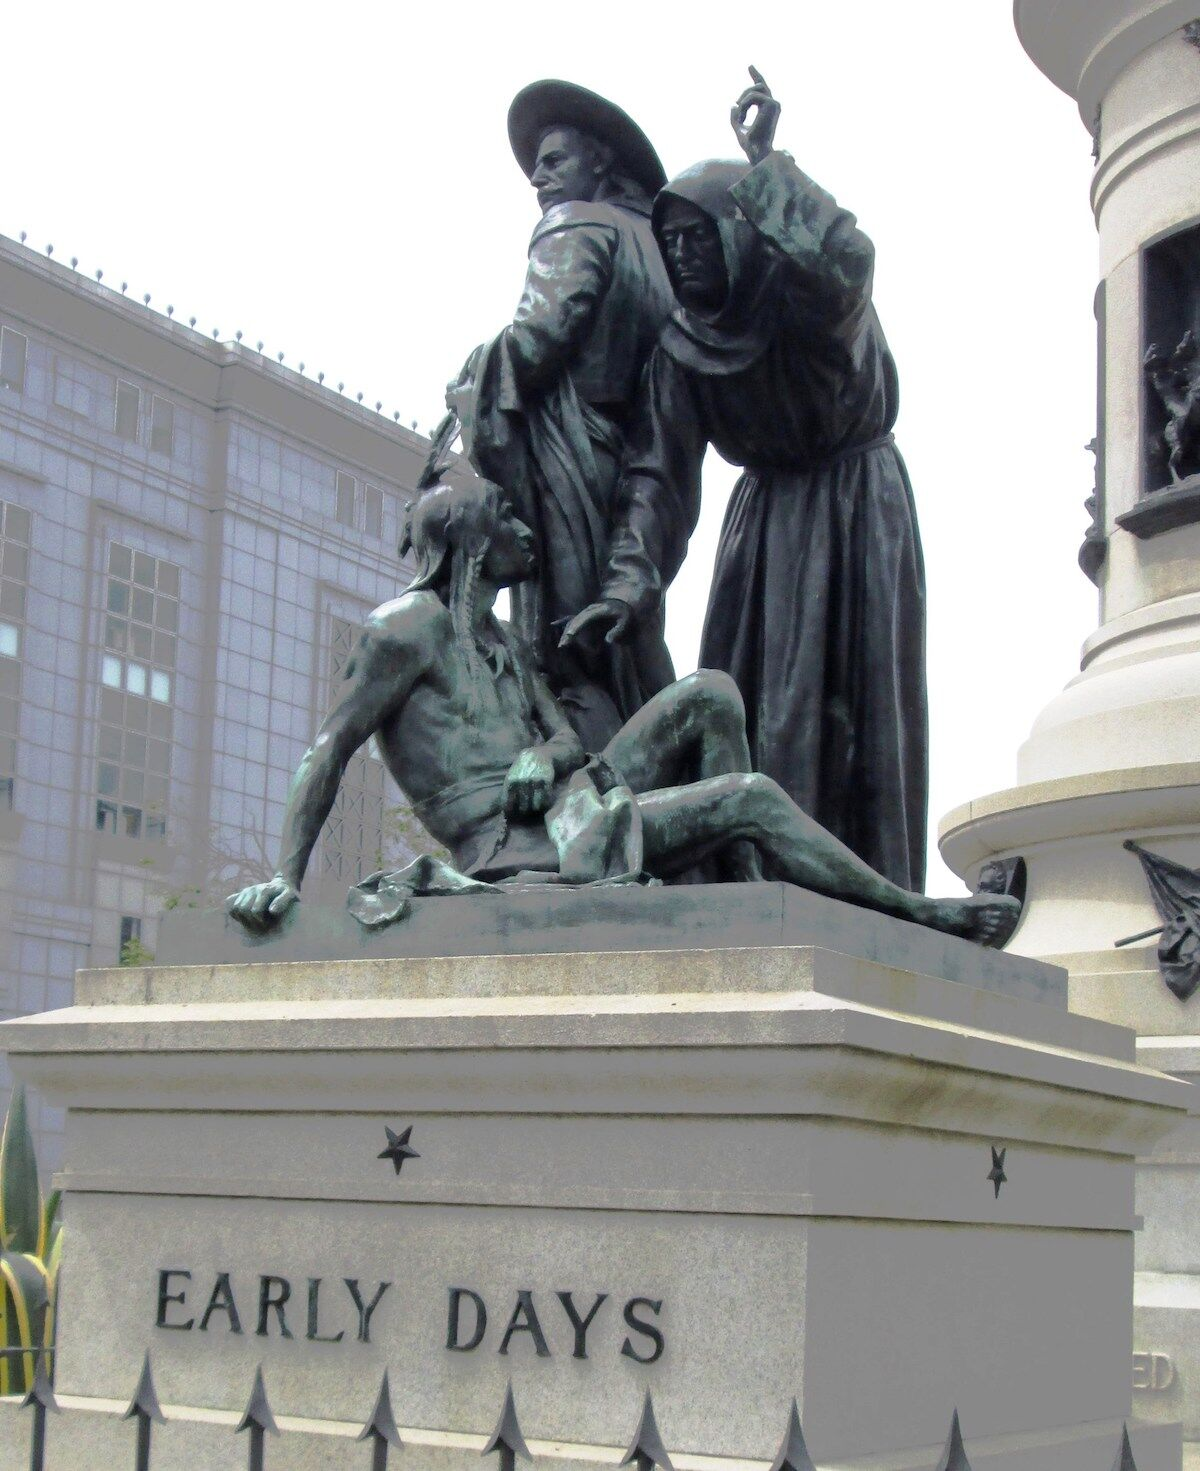 The Early Days (1894) statue that was recently removed in San Francisco. Photo by Beyond My Ken, via Wikimedia Commons.